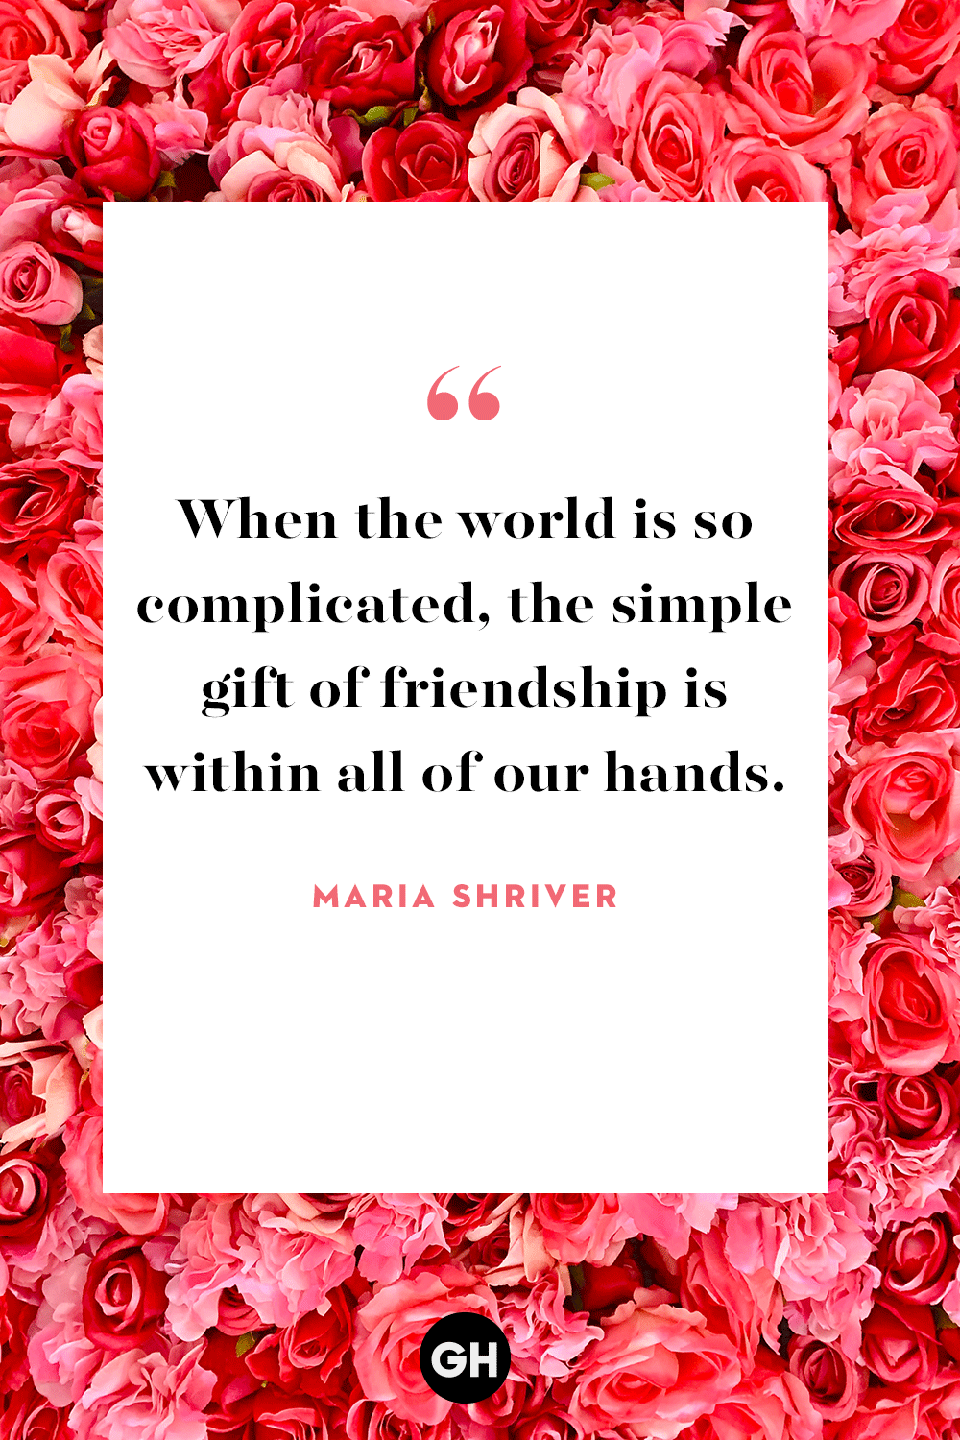 <p>When the world is so complicated, the simple gift of friendship is within all of our hands. </p>